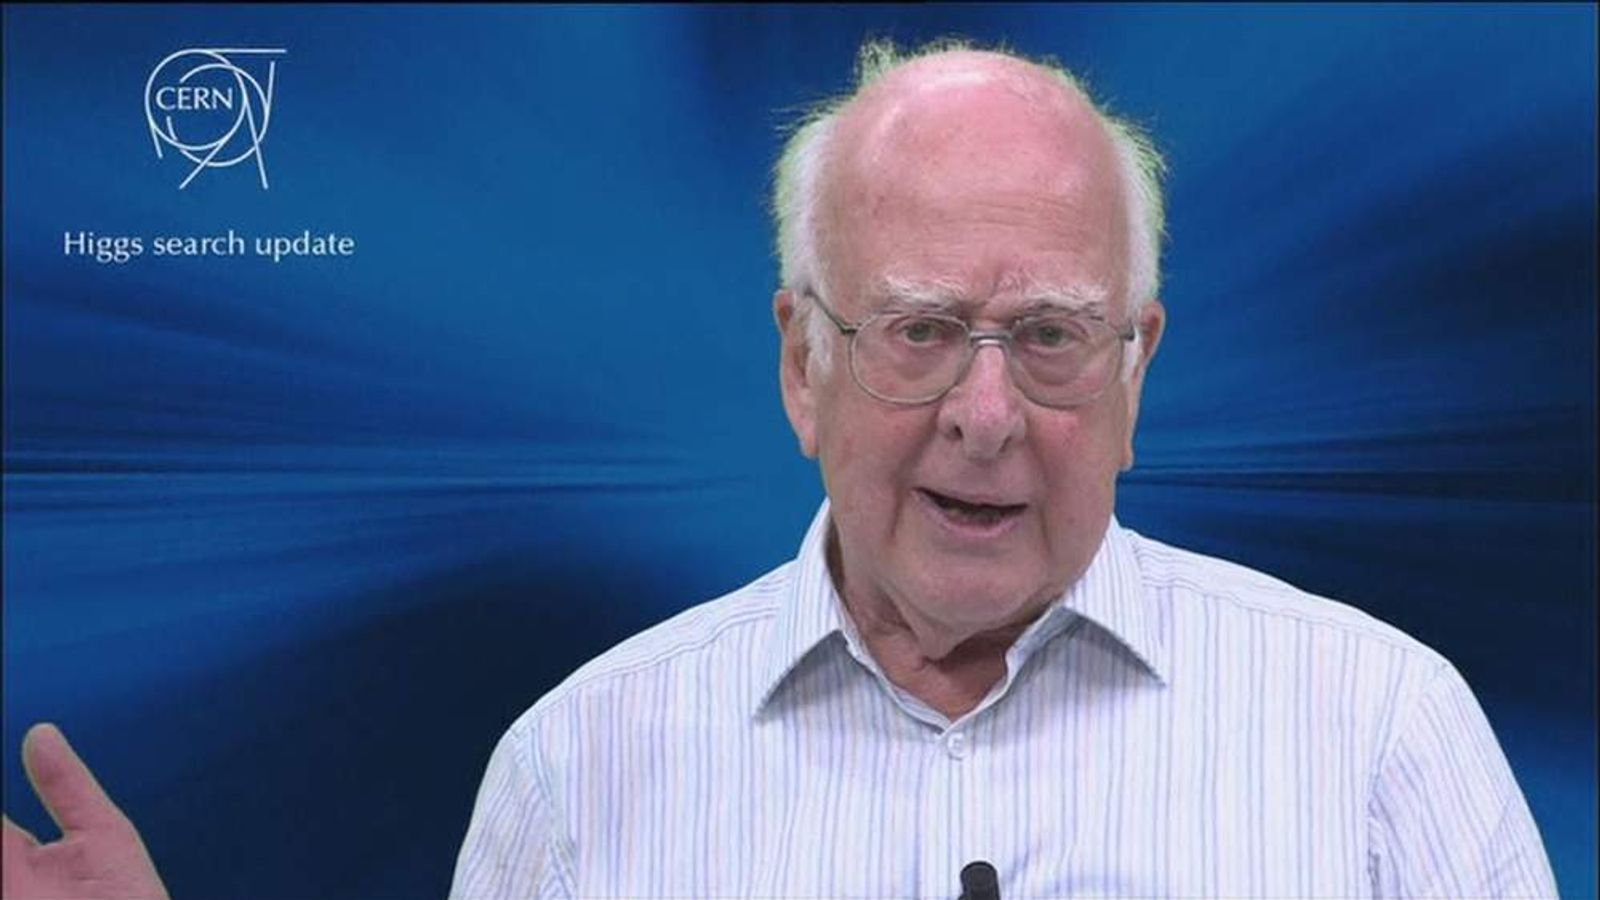 Professor Peter Higgs